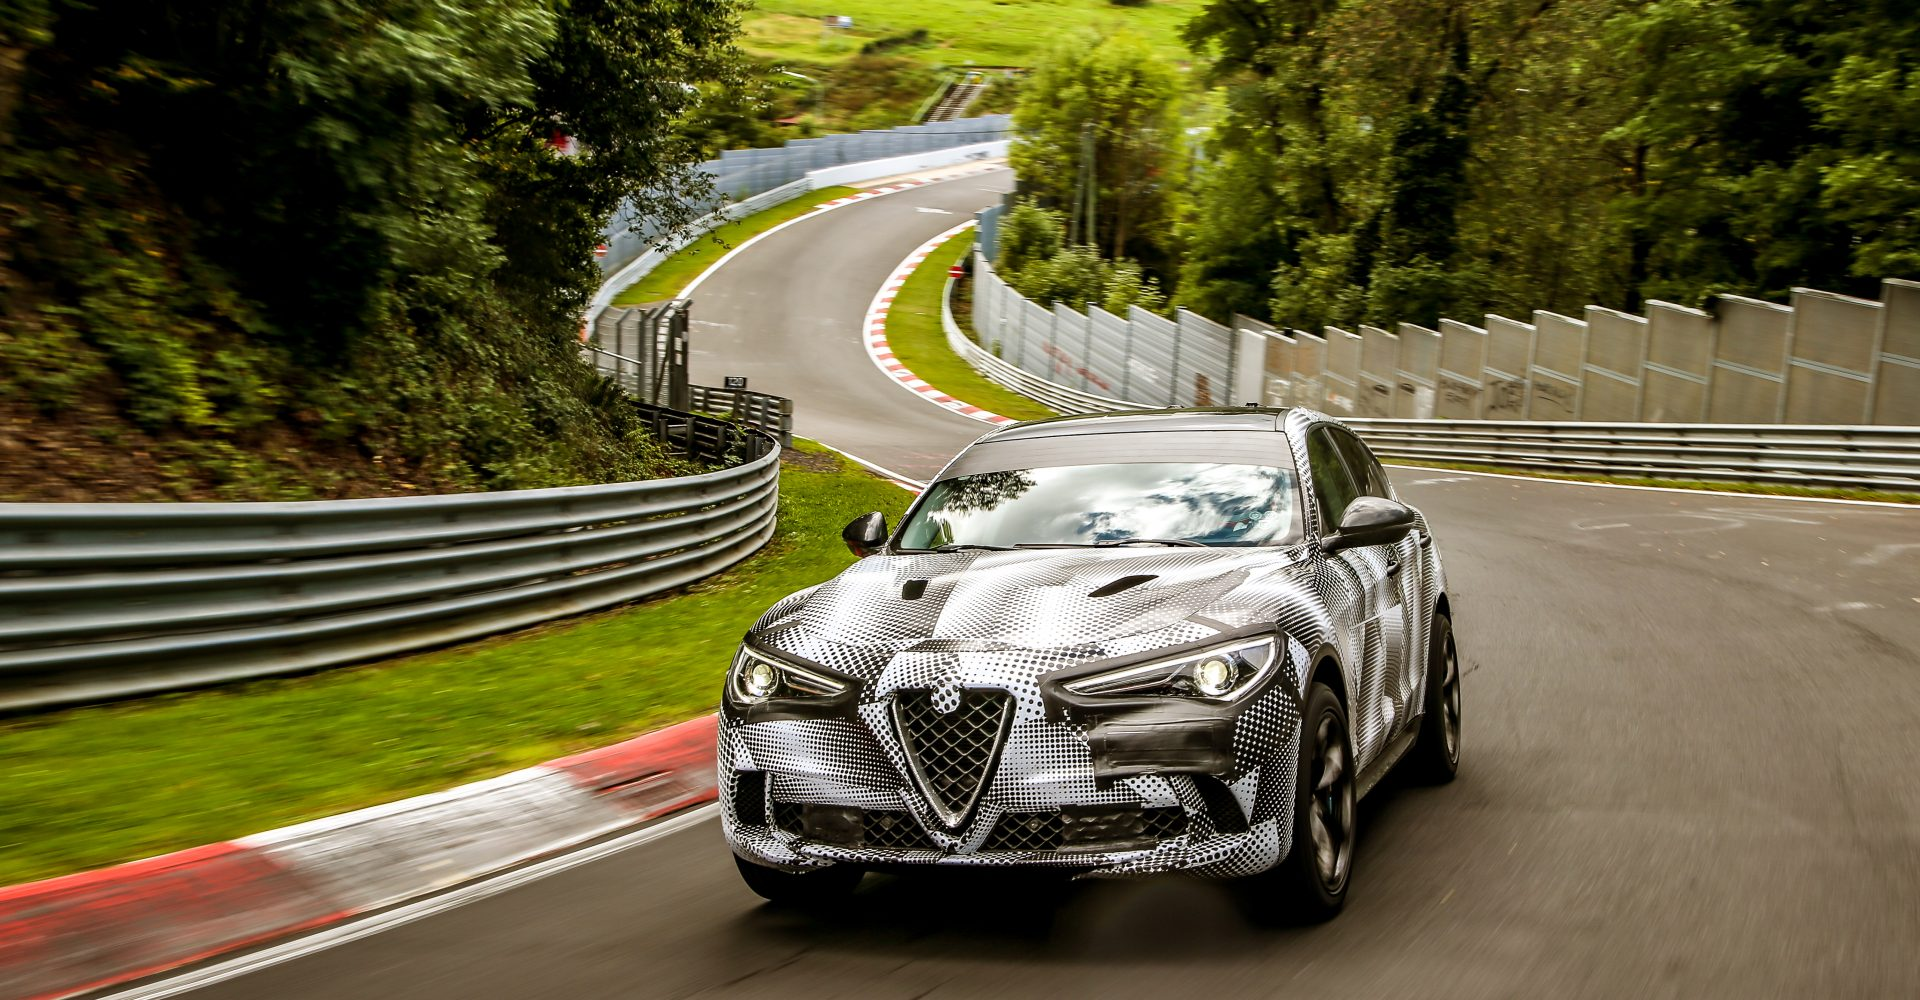 The Alfa Romeo Stelvio Quadrifoglio is the fastest SUV at the Nurburgring